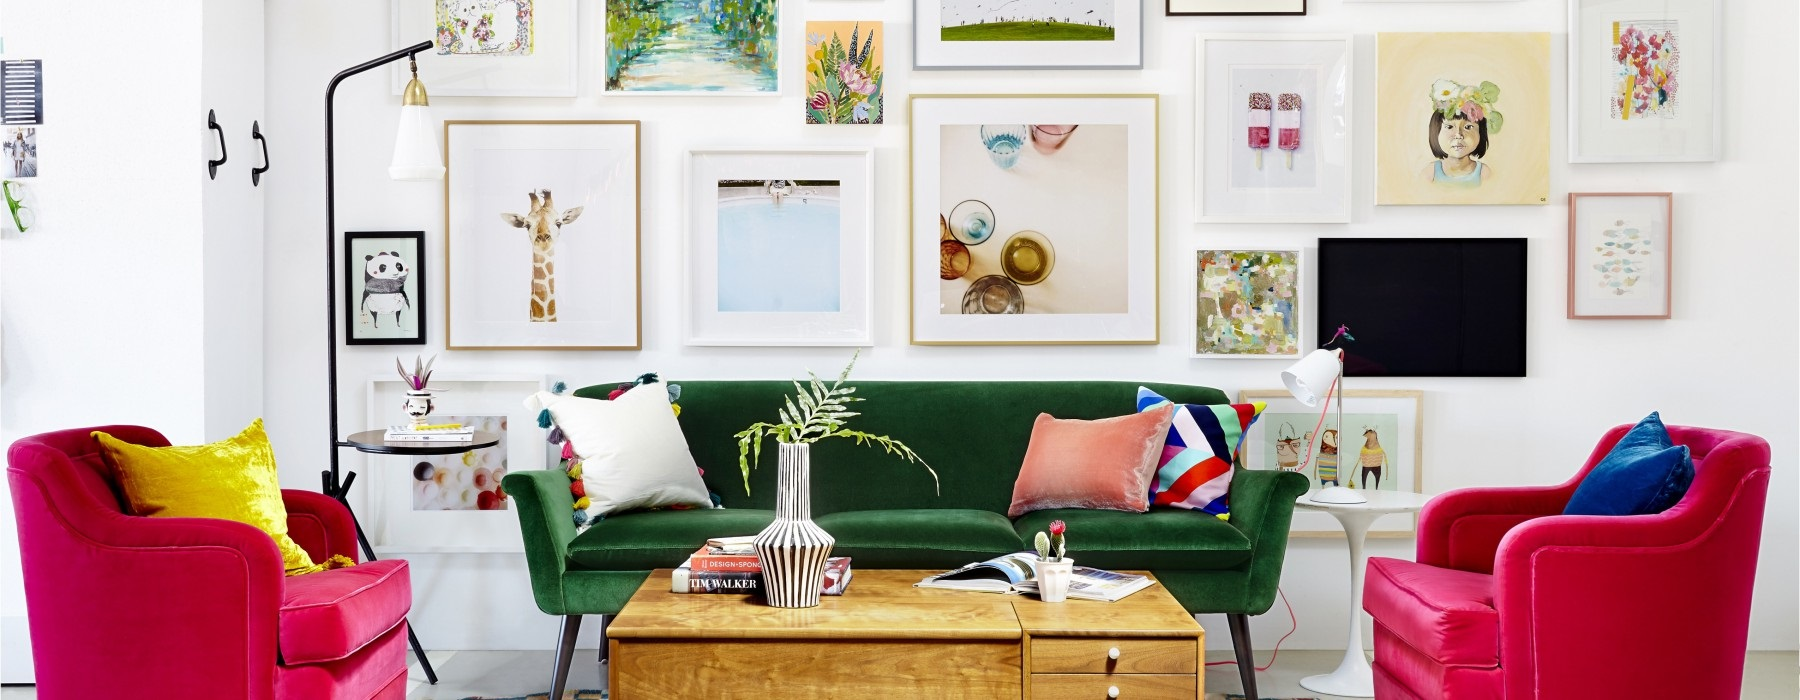 7 Ways Hanging Wall Art At Home Can Make You Happier And Healthier